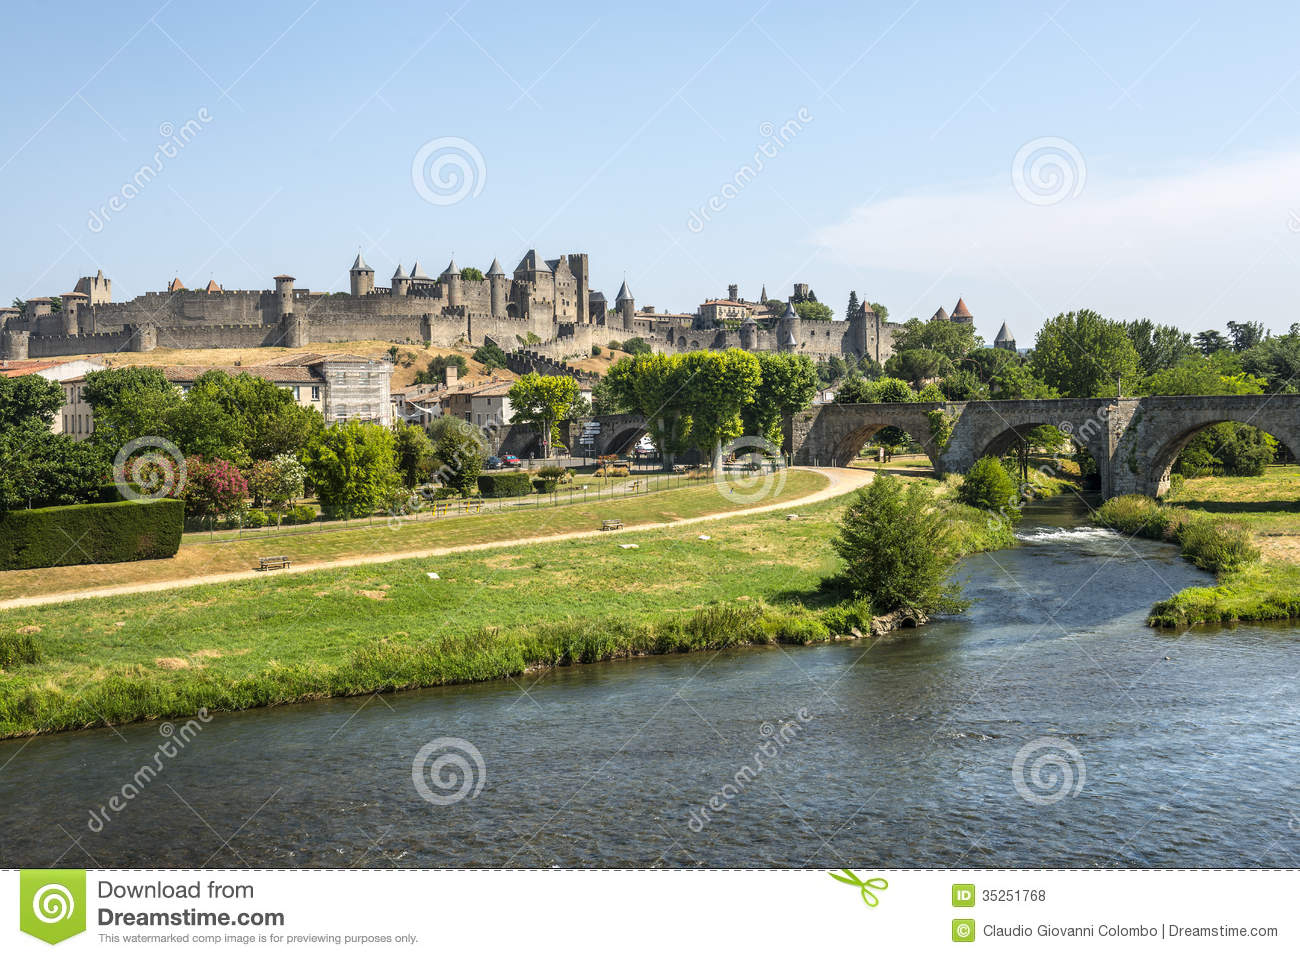 languedoc map with Royalty Free Stock Photos Carcassonne France Aude Languedoc Roussillon Cite Bridge River Summer Afternoon Image35251768 on 4221087369 besides Maps further Vias together with Datei Auvergne in France also Ch agne Ardenne Road Map.